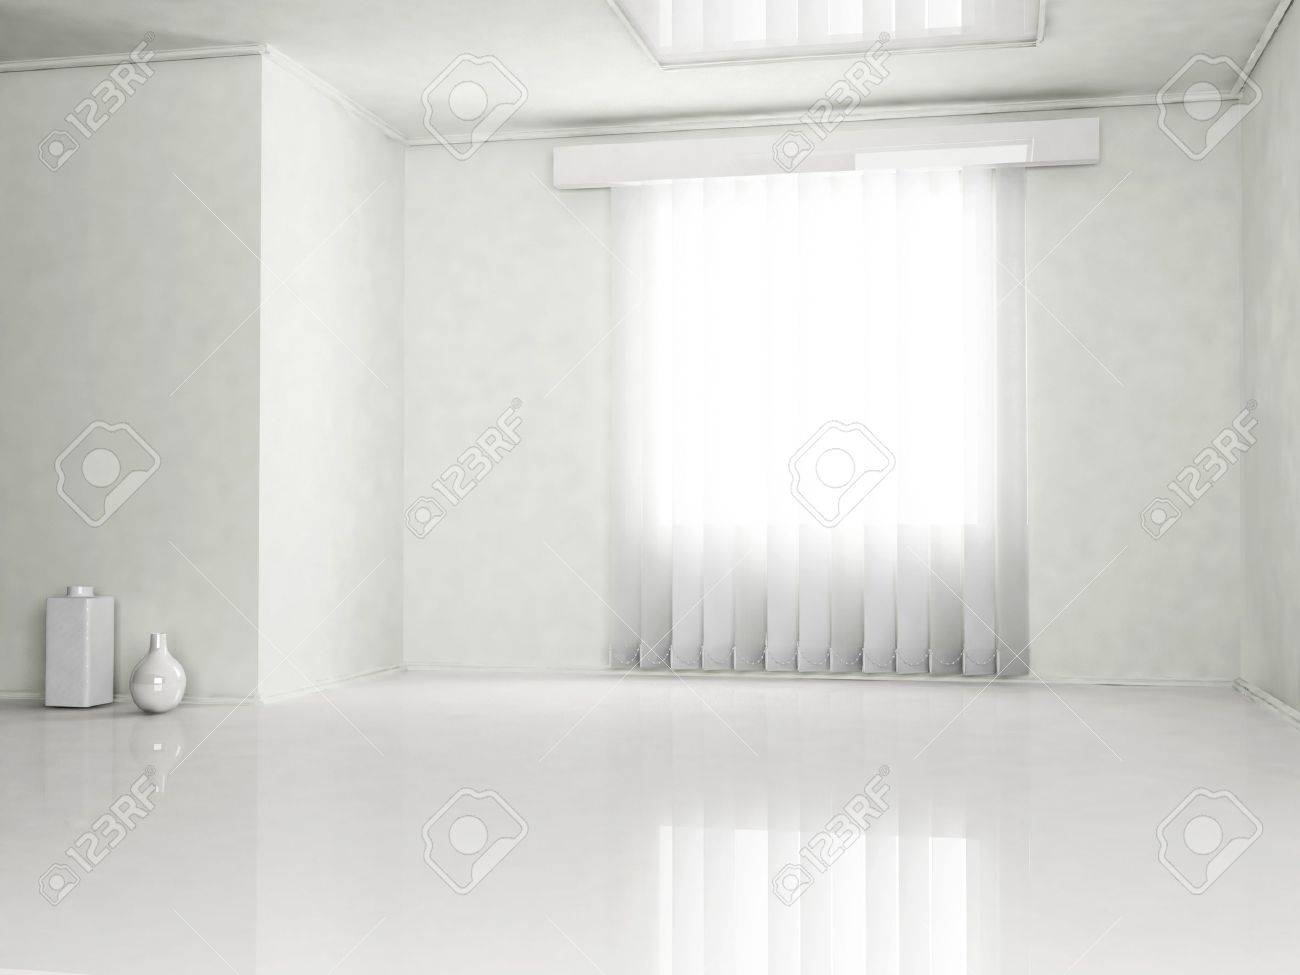 Interior design scene with the vases and a window Stock Photo - 14397723